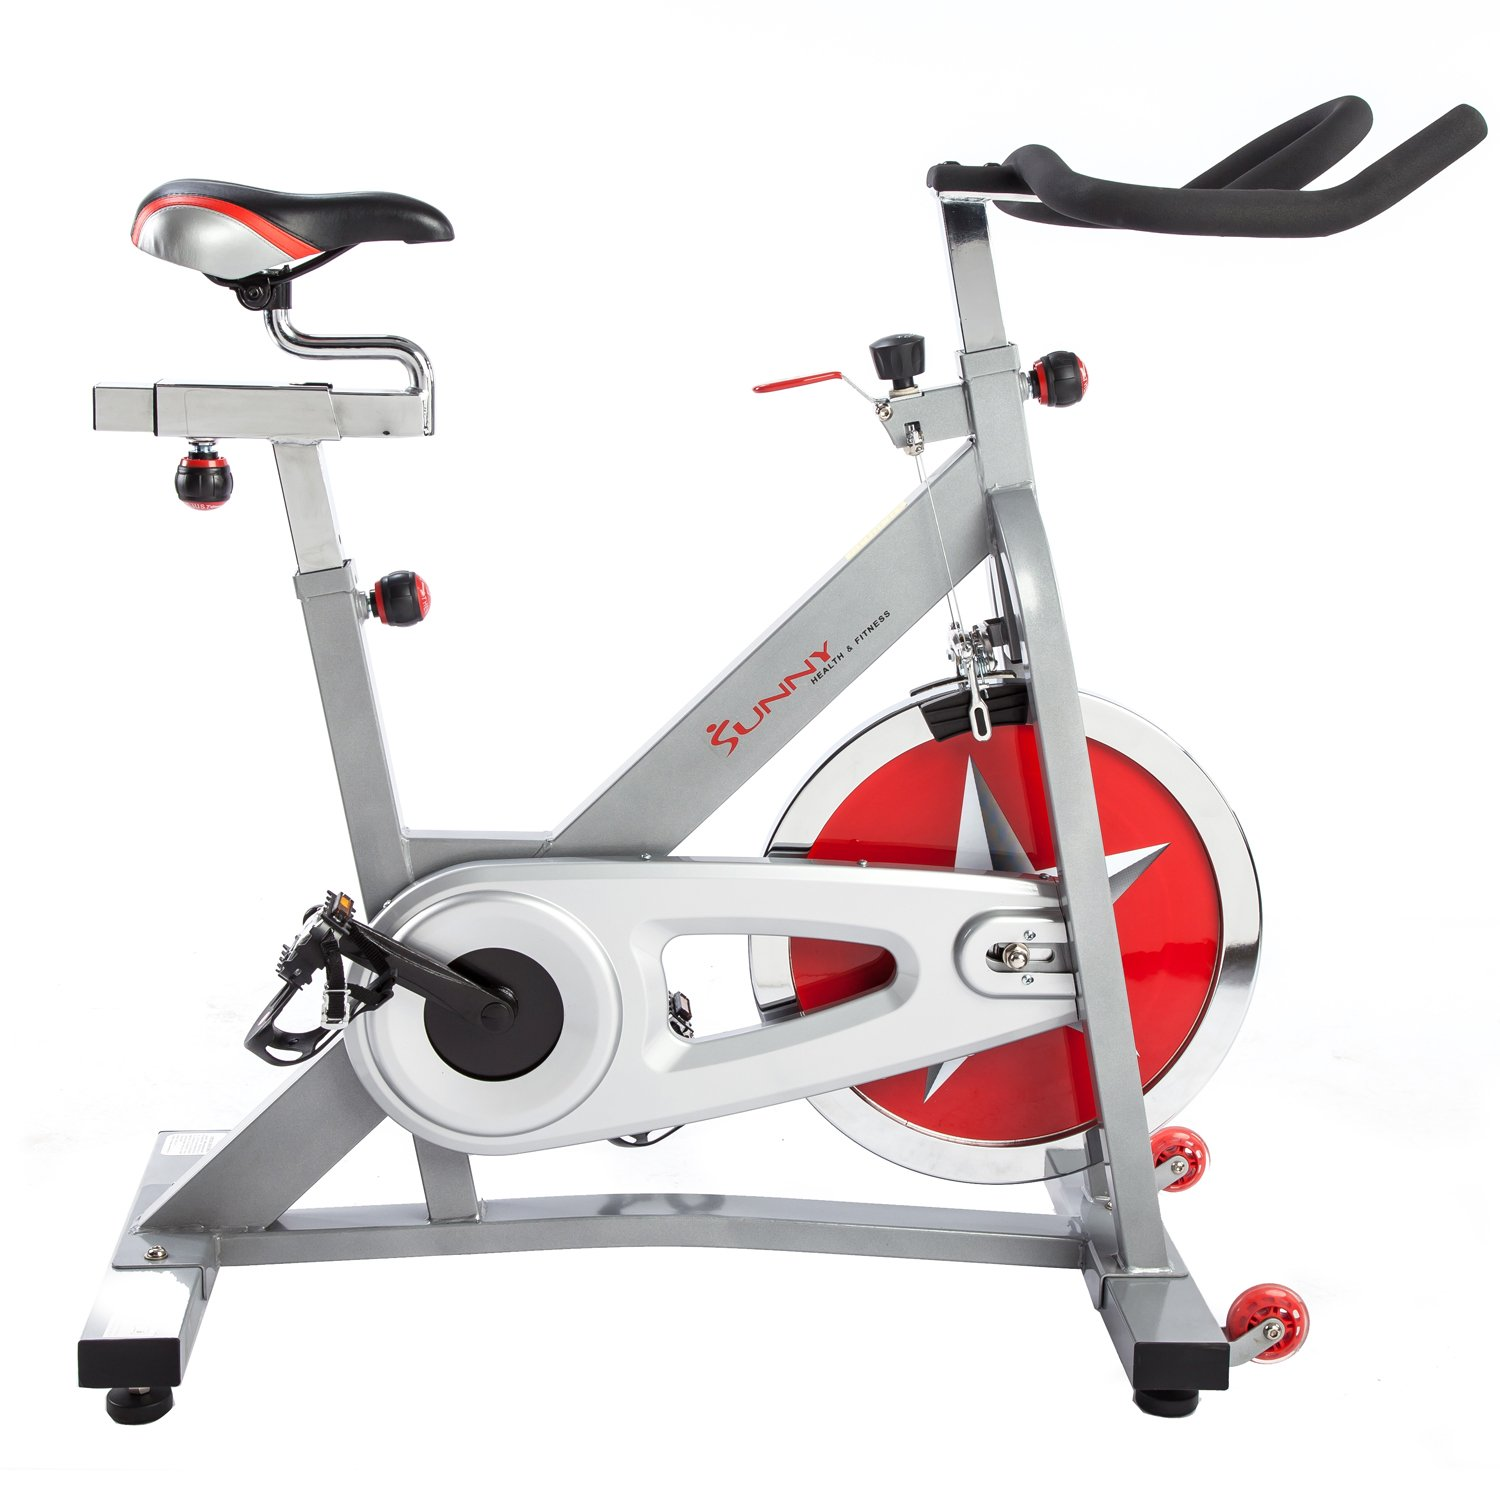 Top 7 Best Spin Bike Reviews for 2017